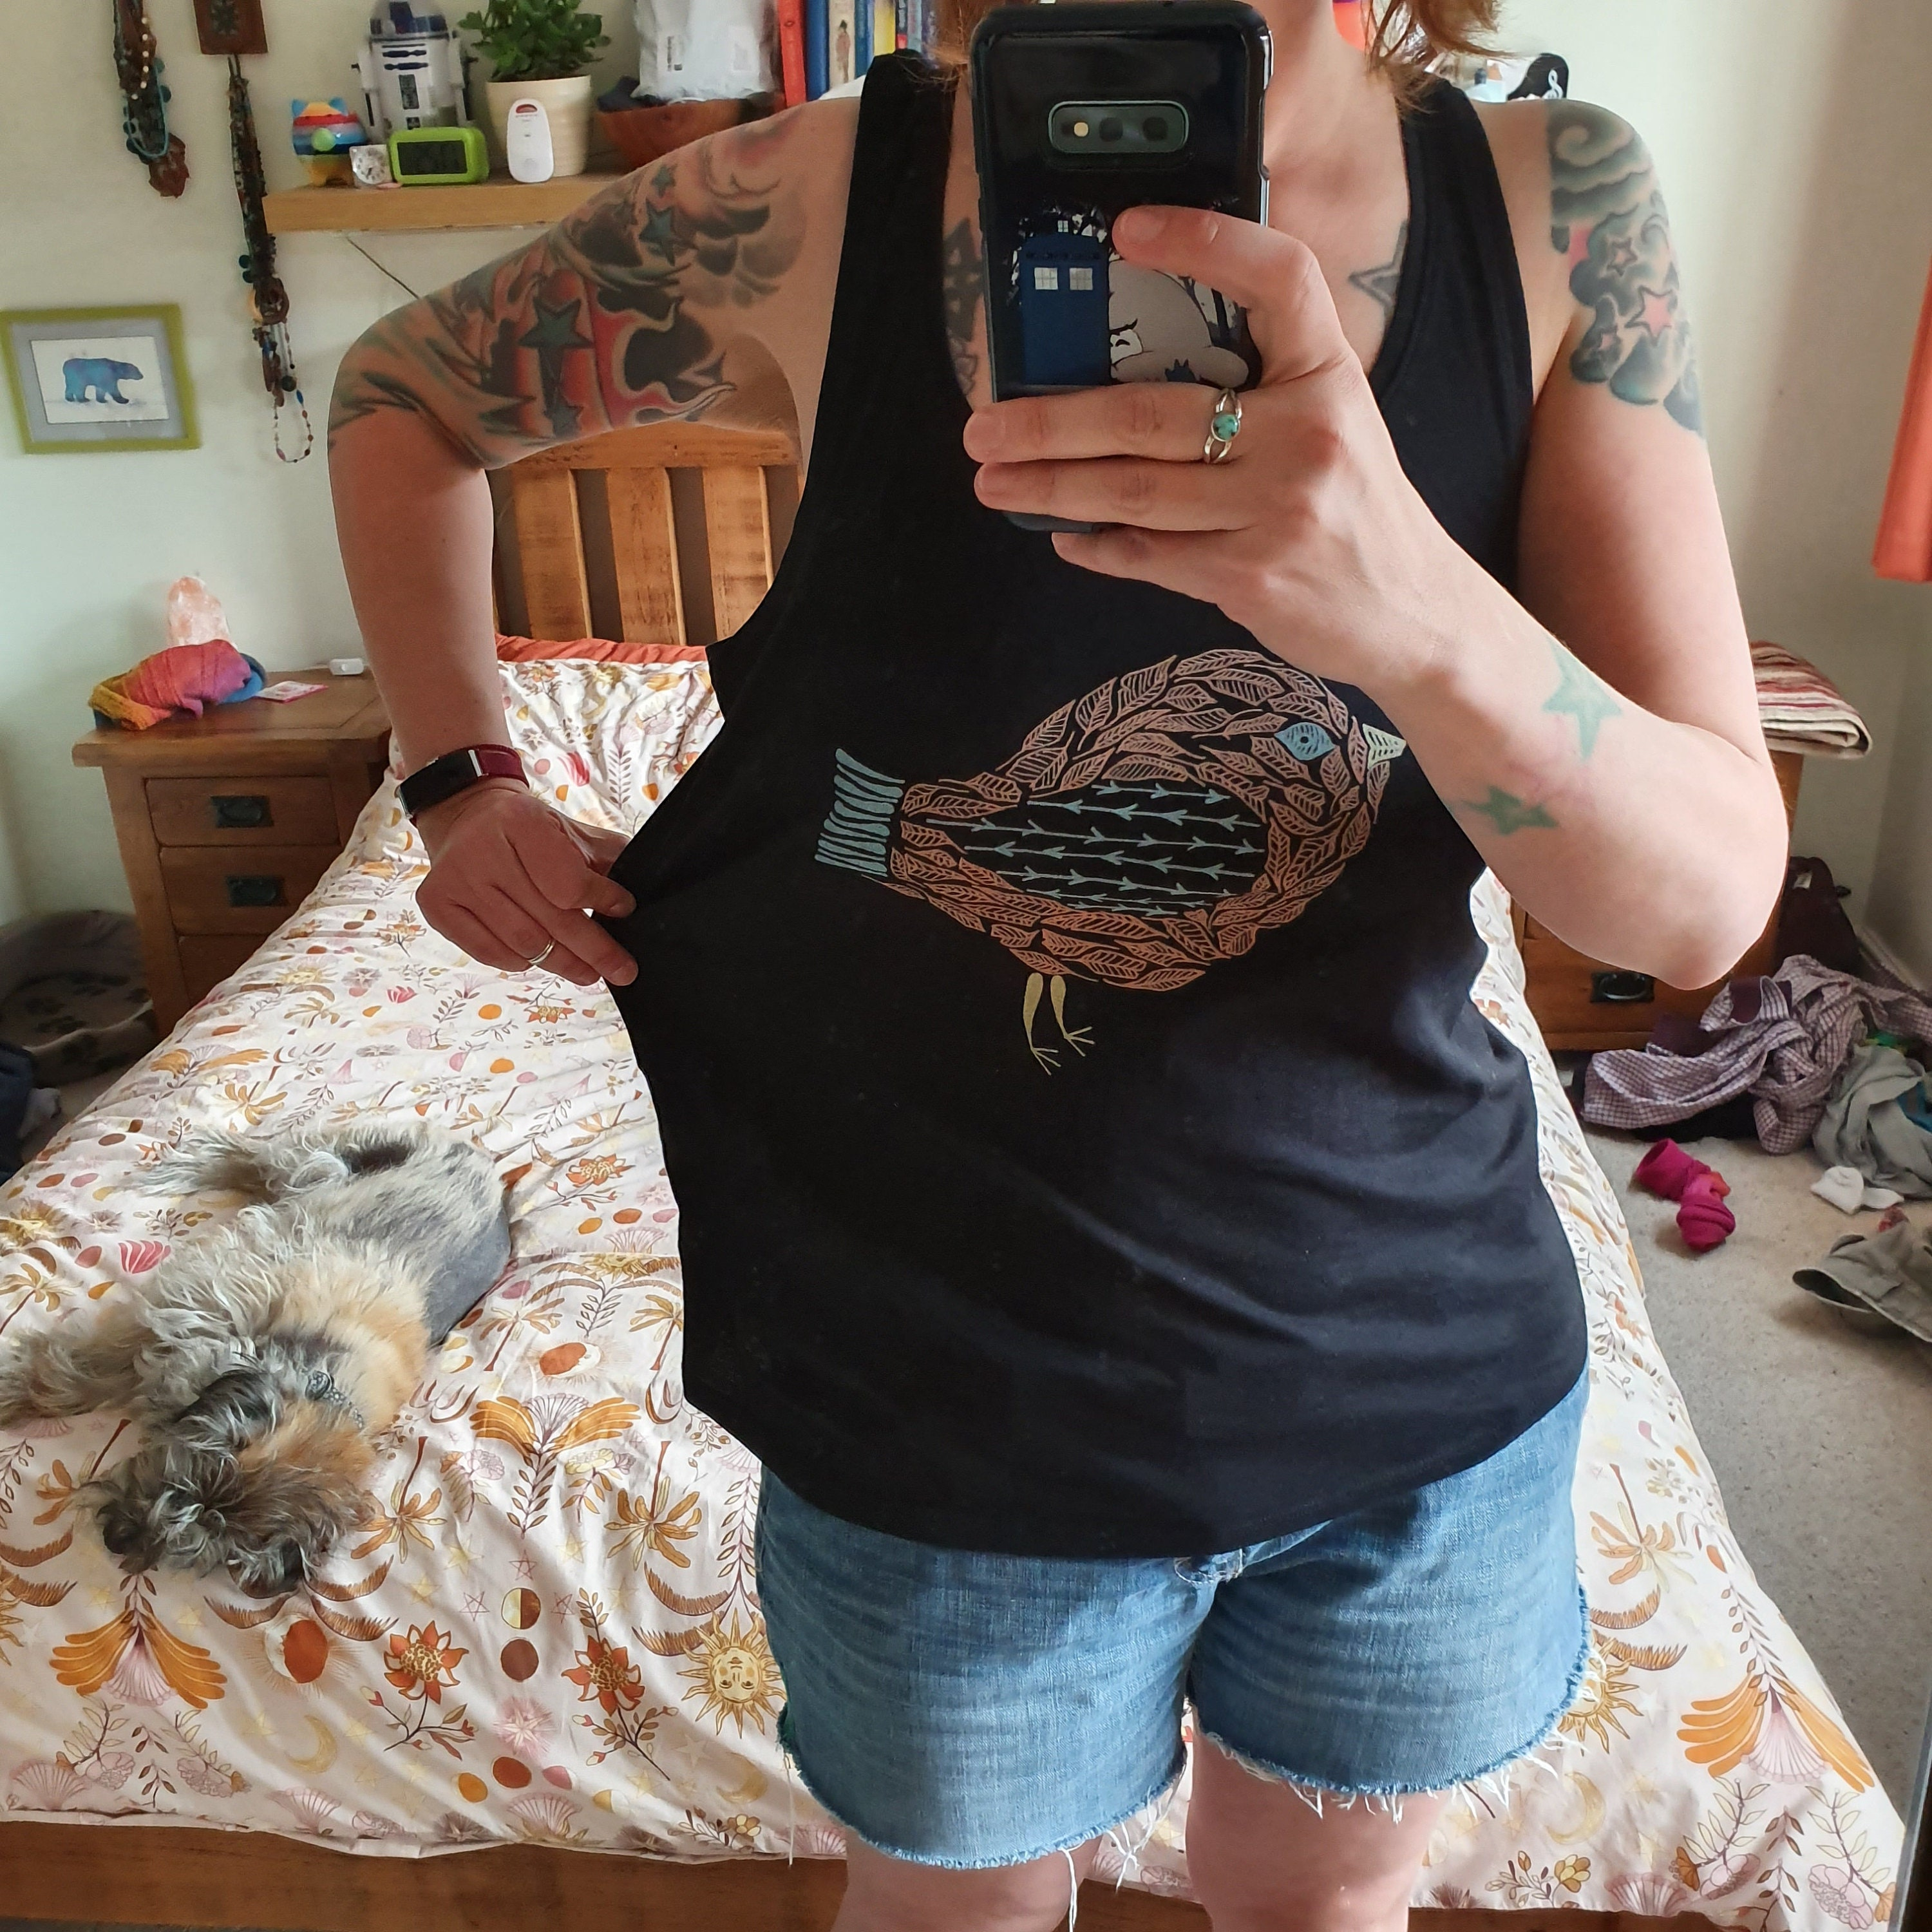 Sarah Clark added a photo of their purchase